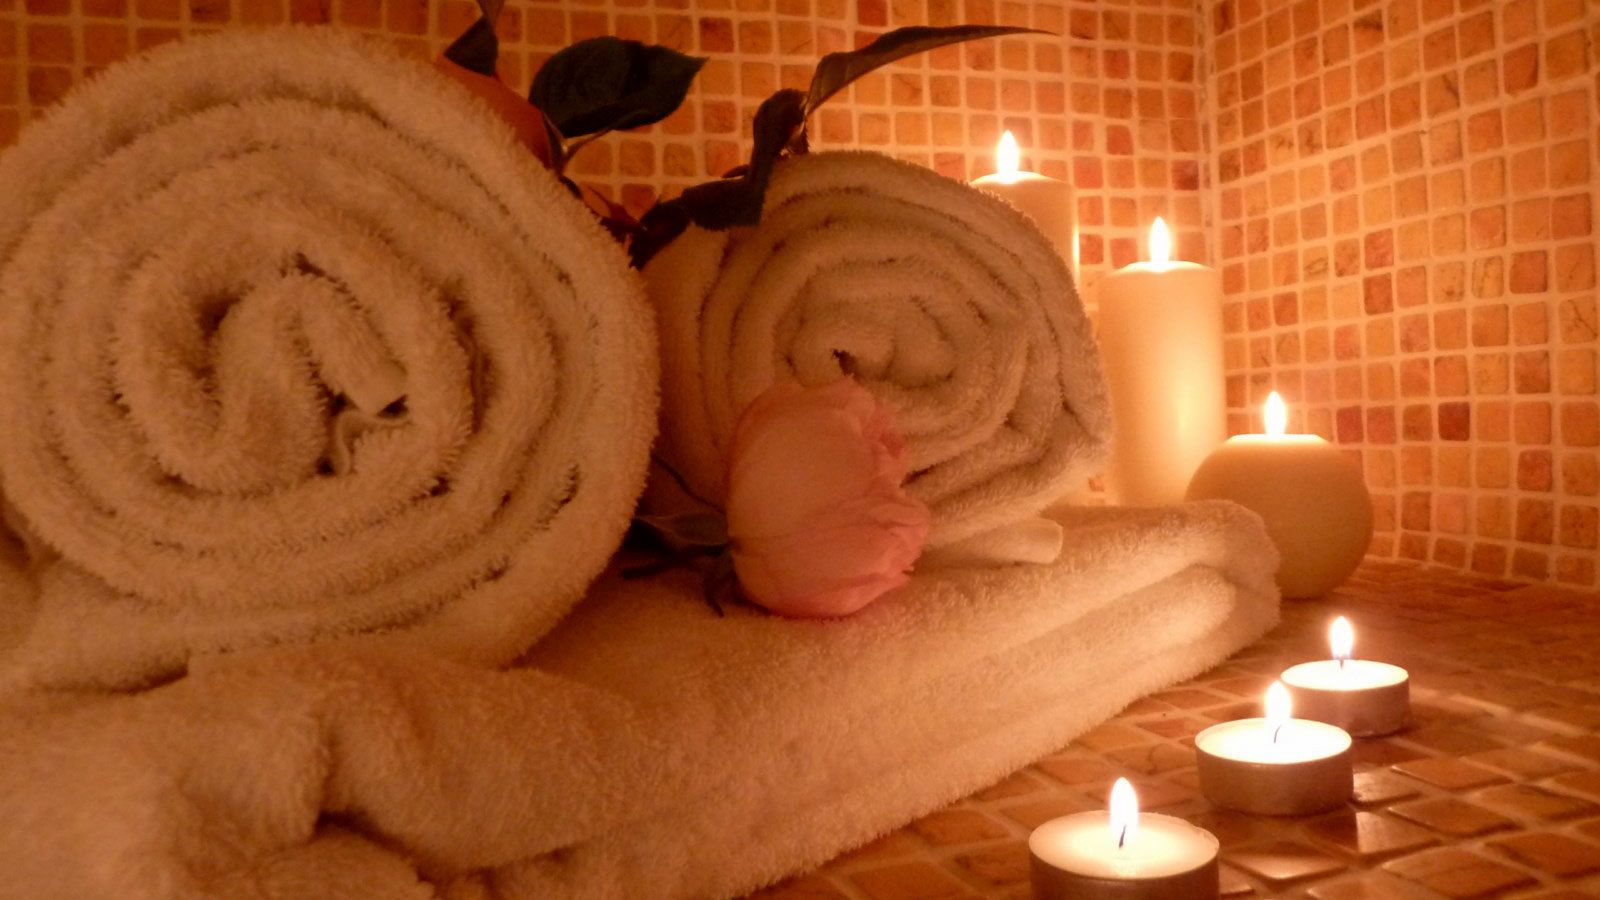 Towels and candles at a spa in Marrakech